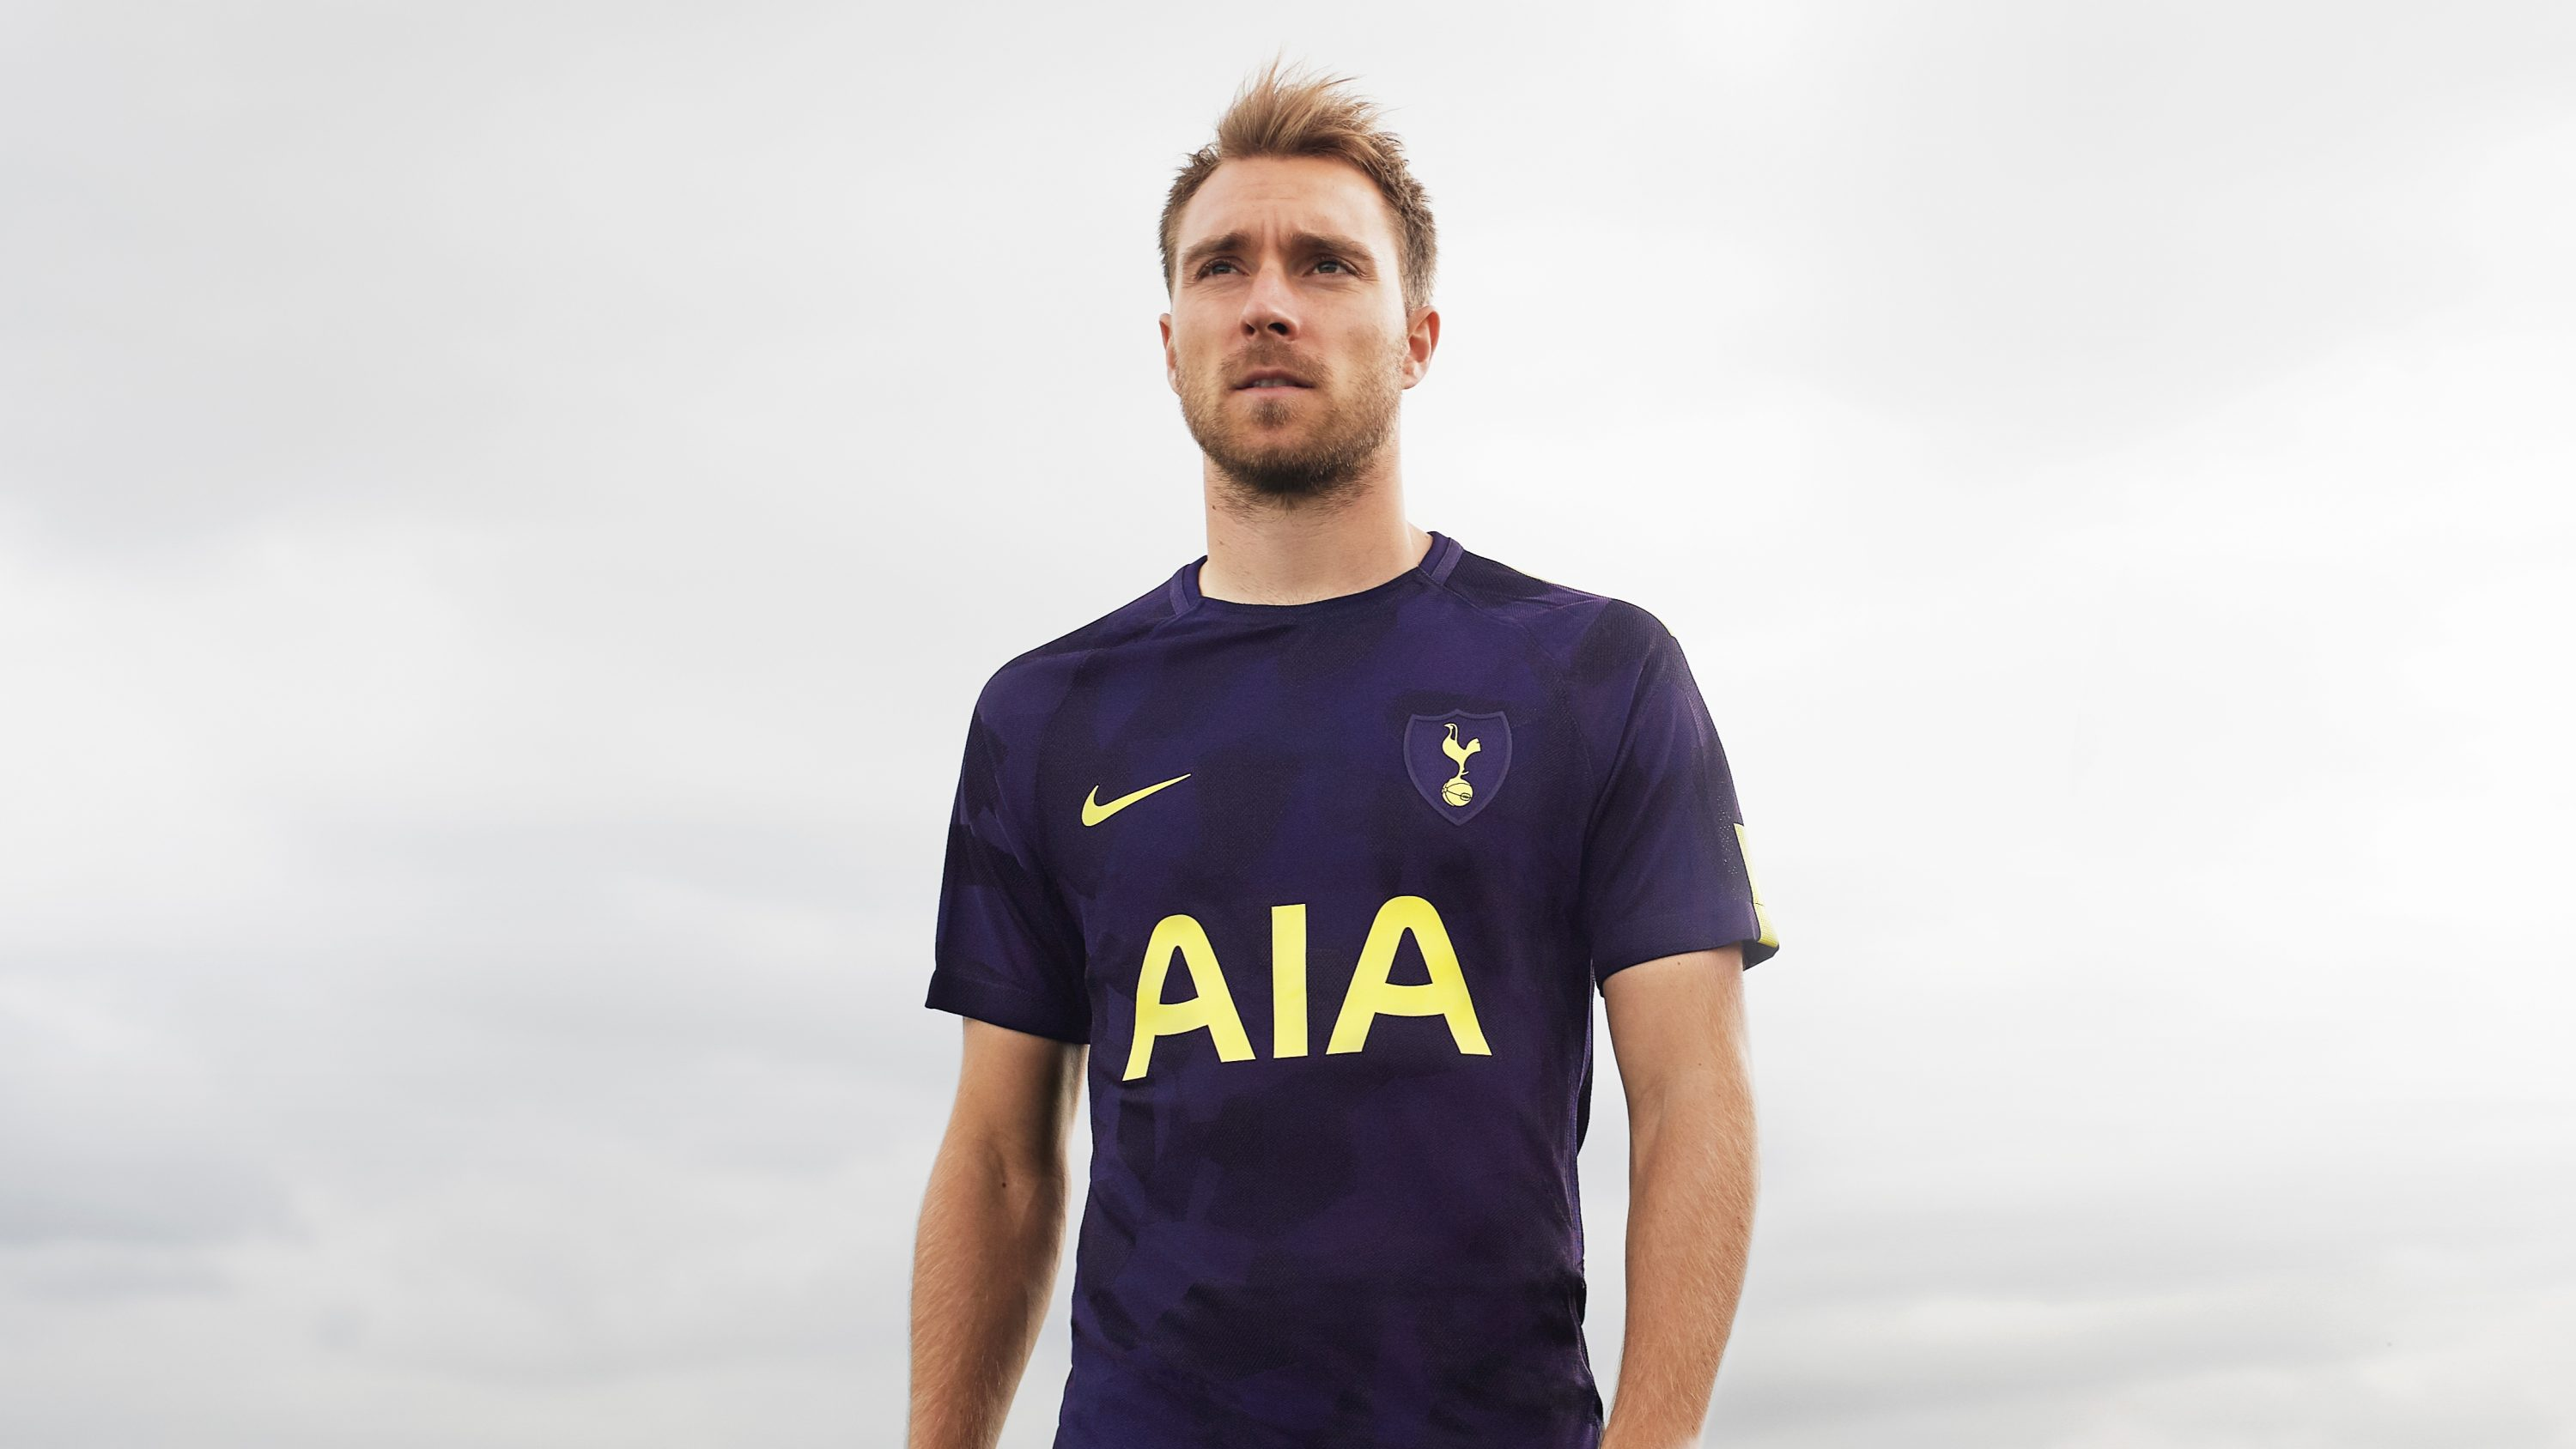 Interview Christian Eriksen on Wembley Champions League and Skepta